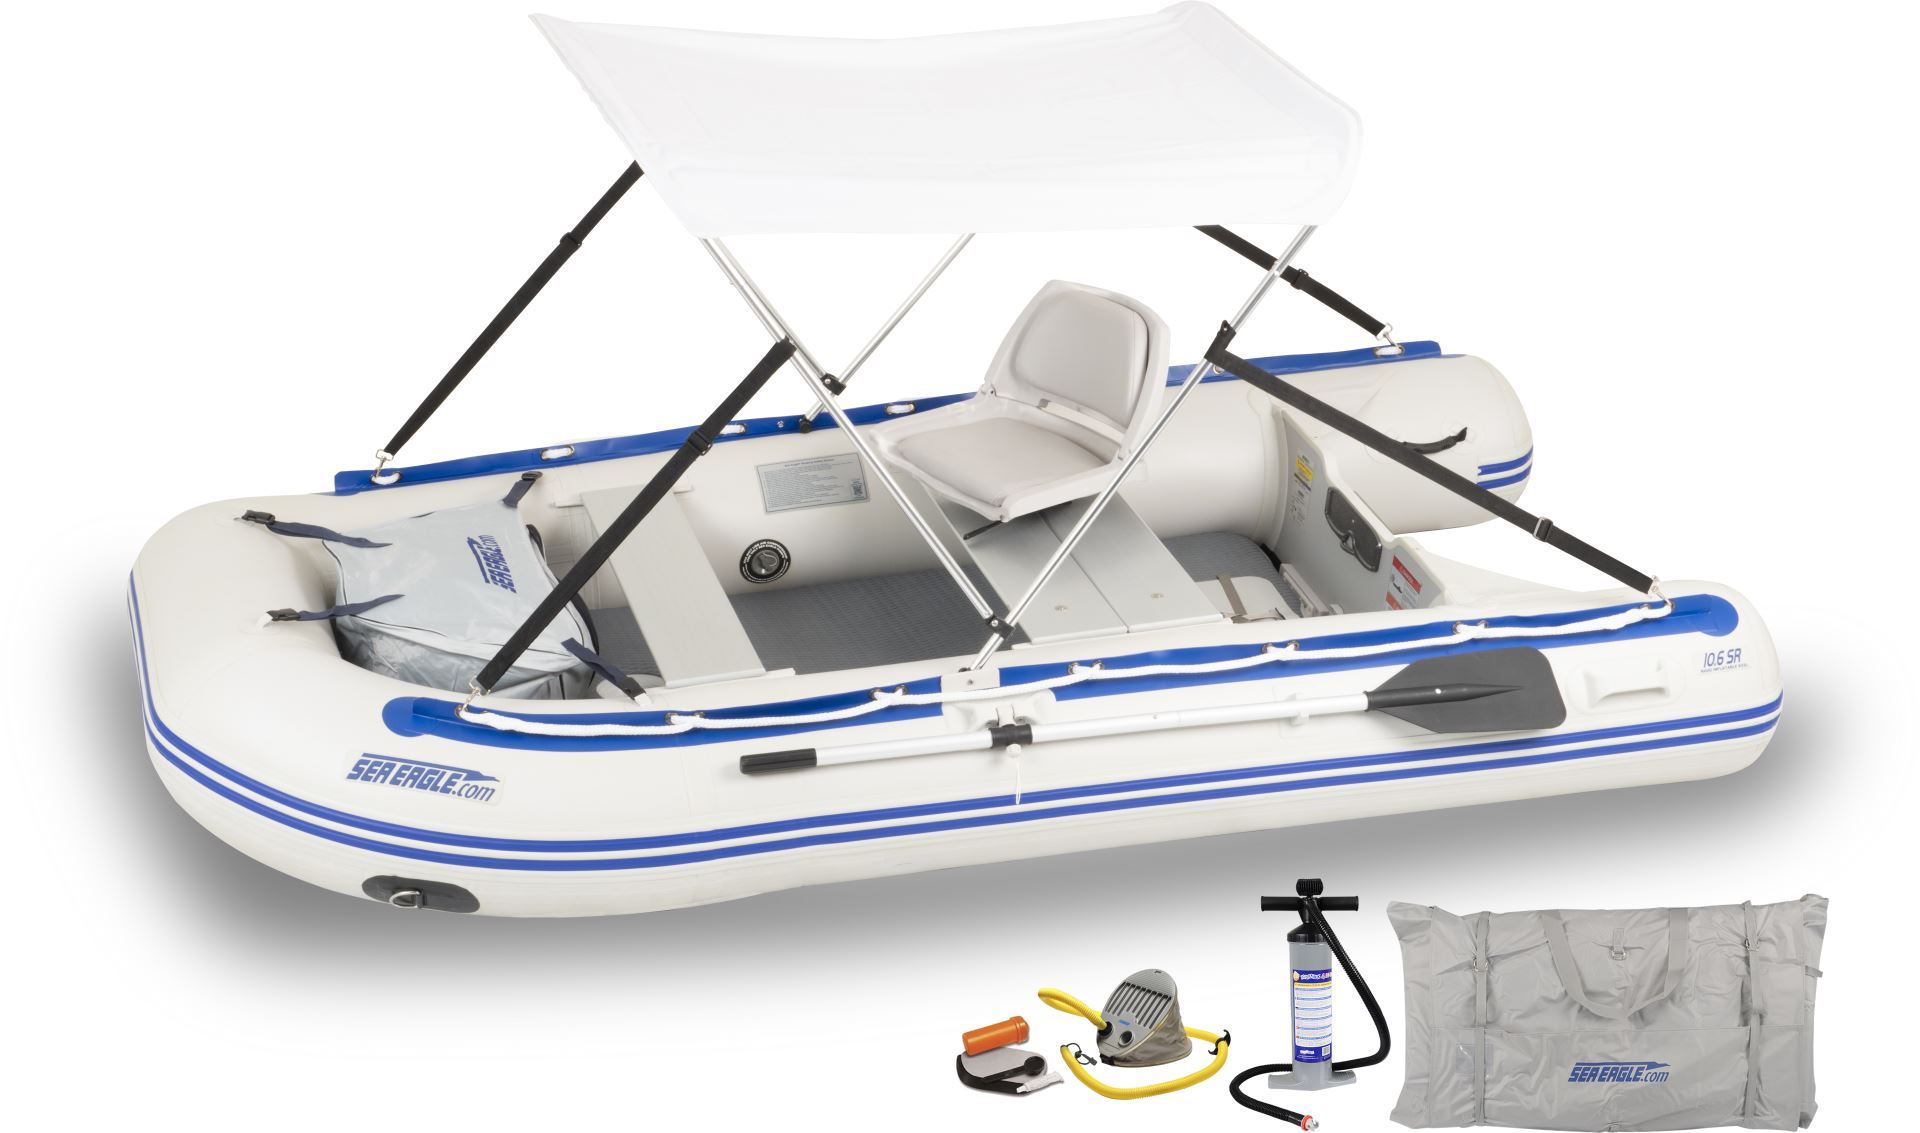 COASTO Rubber Dinghy With Drop Stitch Ground Dinghy Dinghy Motorboat Boat Rowing